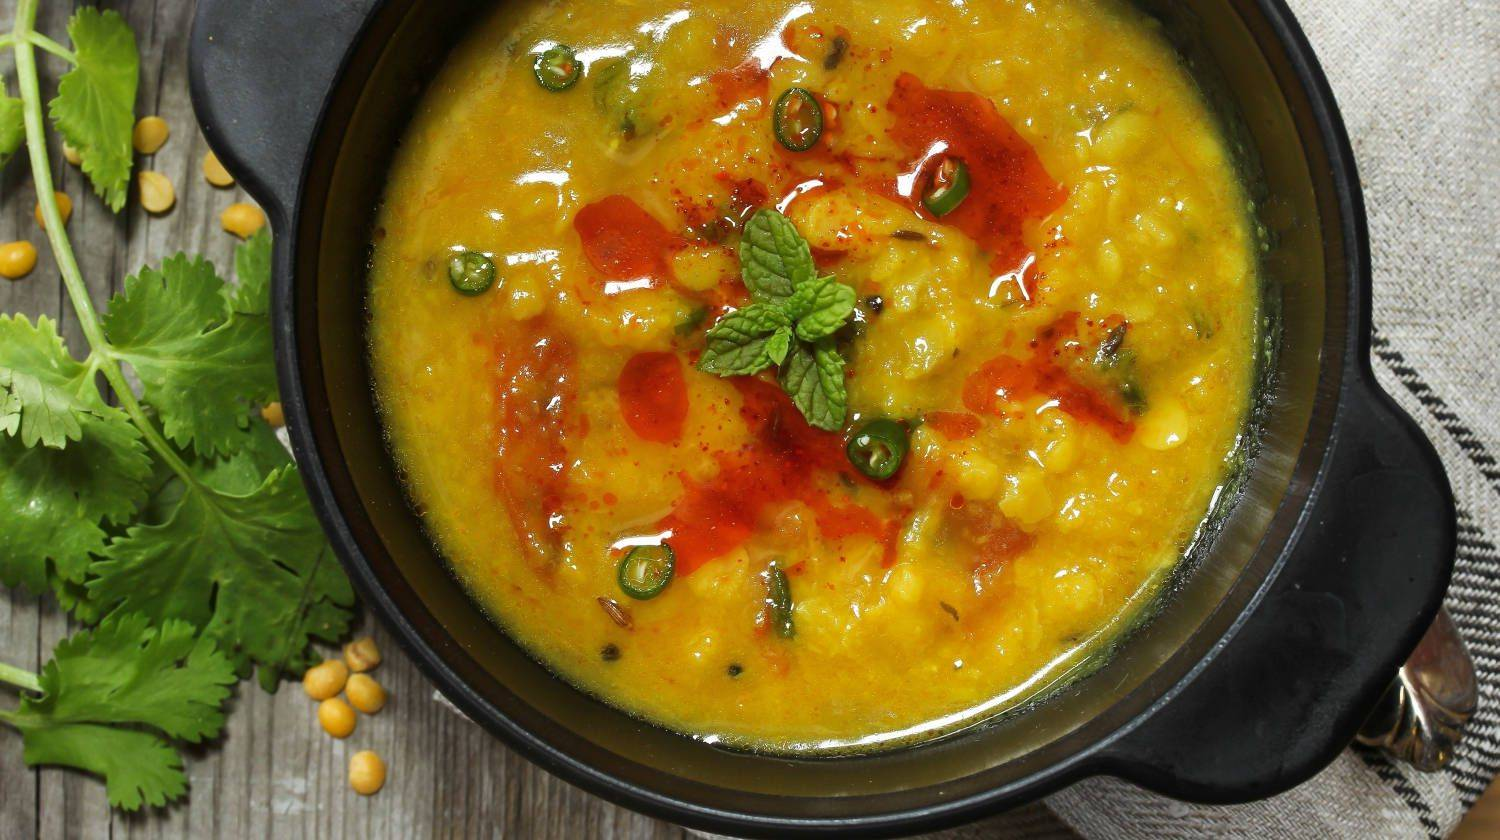 Indian Lentil Curry top down view   How To Make The Famous Healing Kitchari Stew   kitchari spice mix   Featured